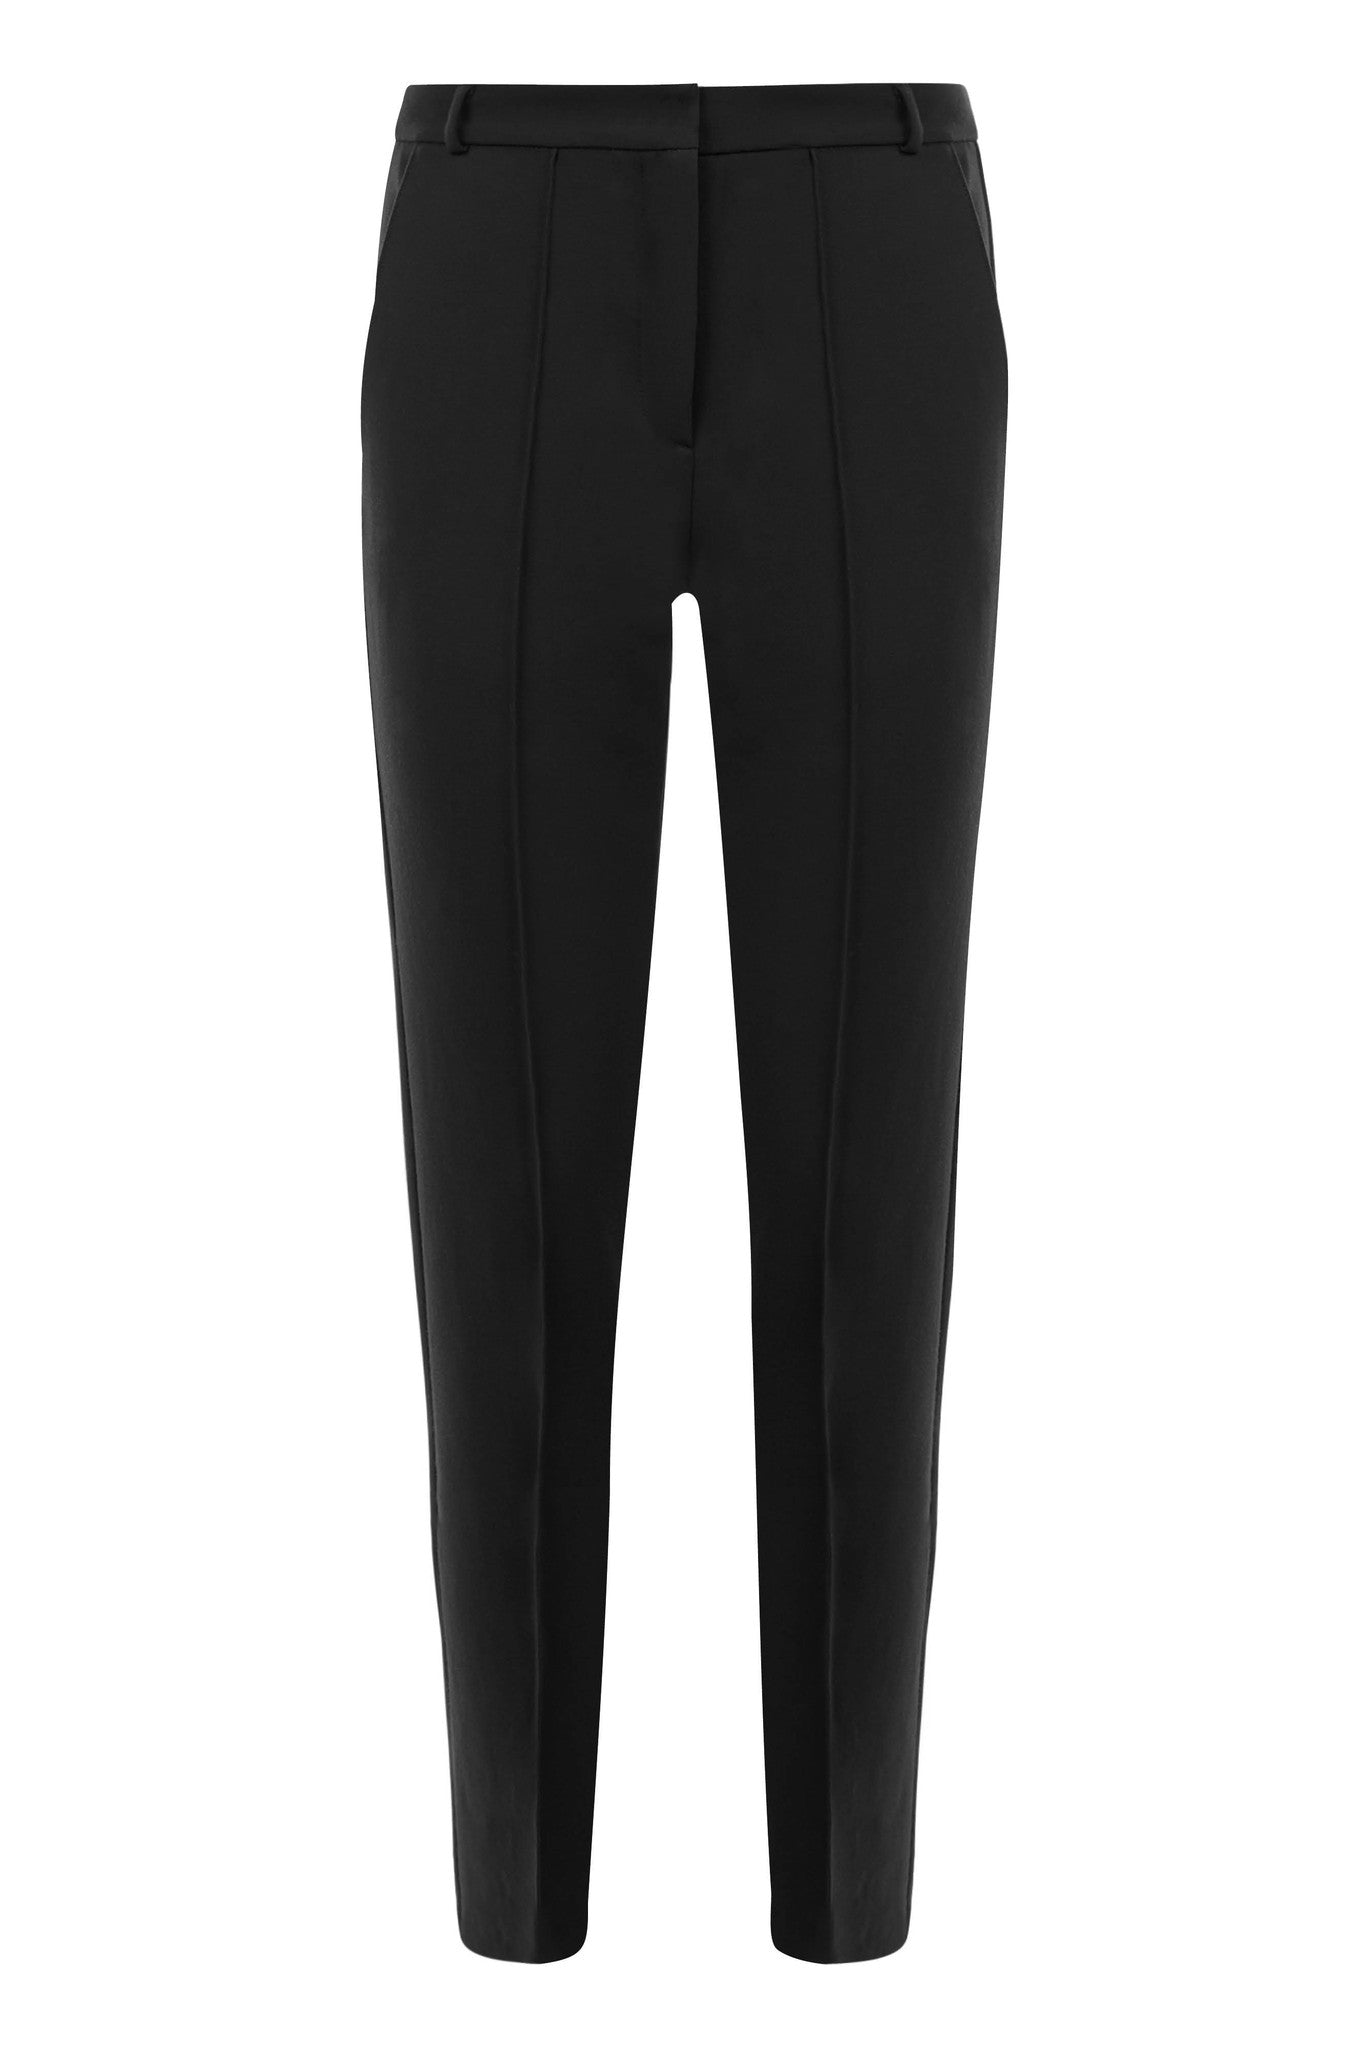 Savoy Black Suiting Trousers